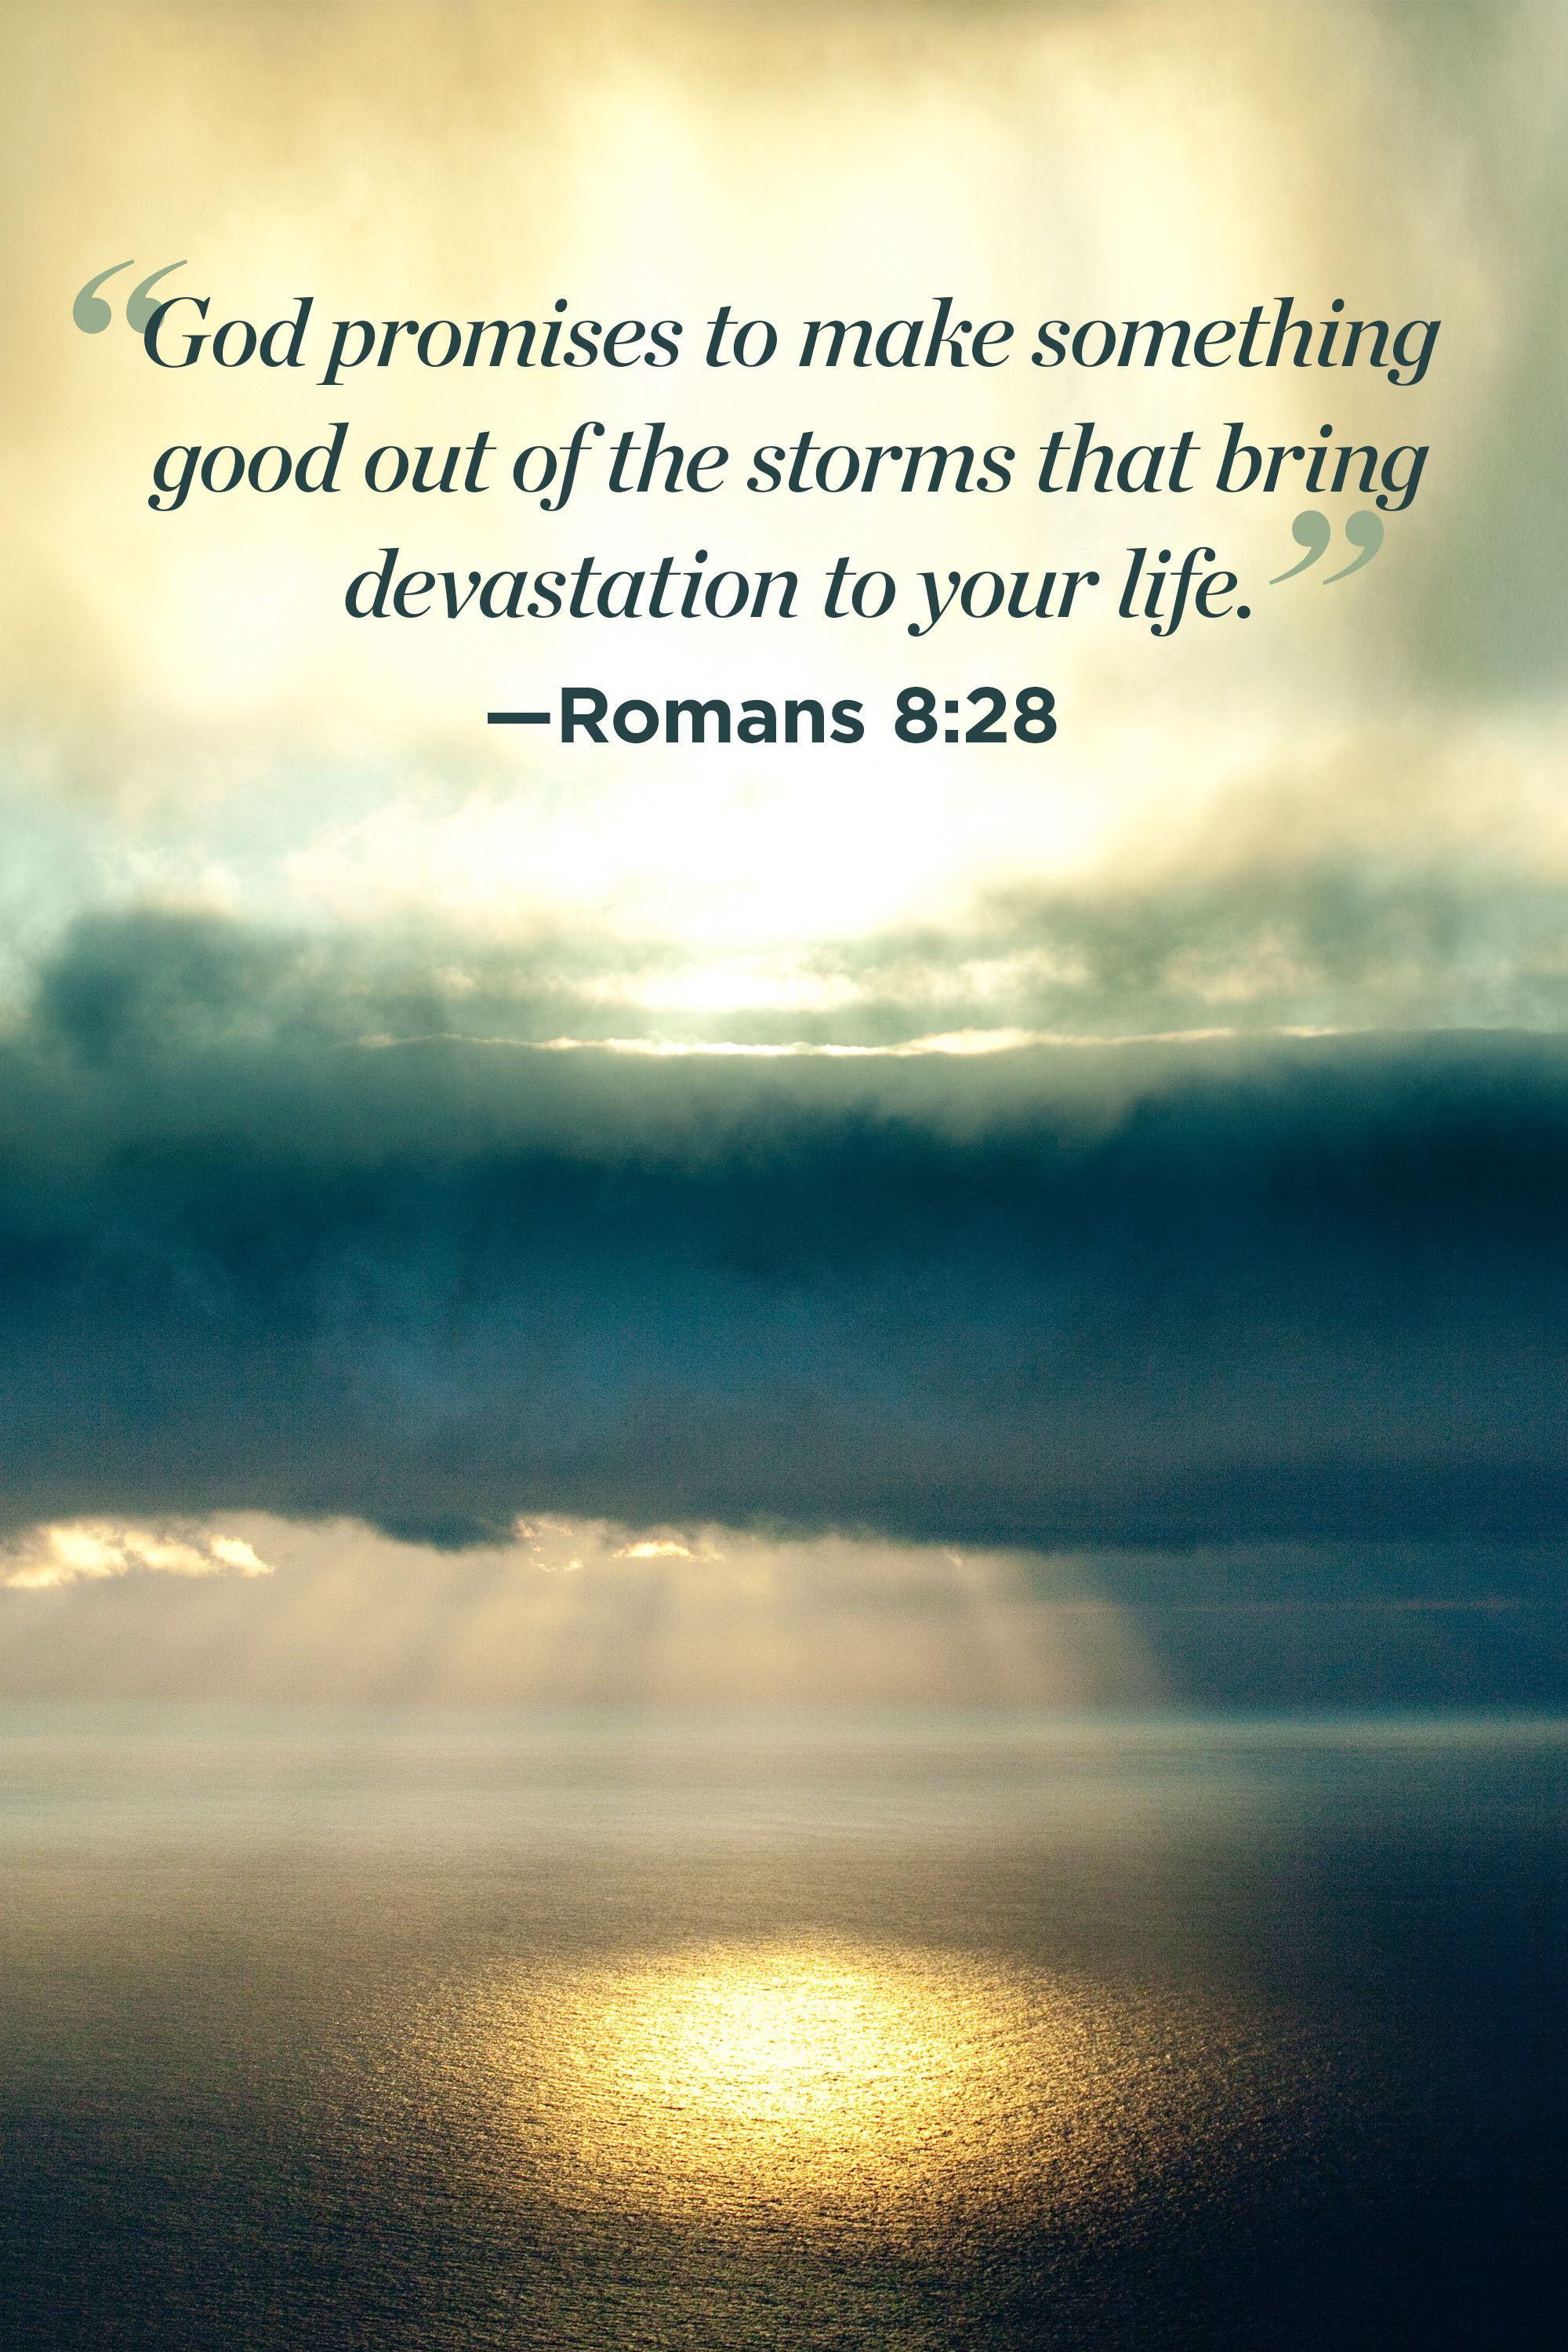 God promises to make something good out of the storms that bring devastation to your life